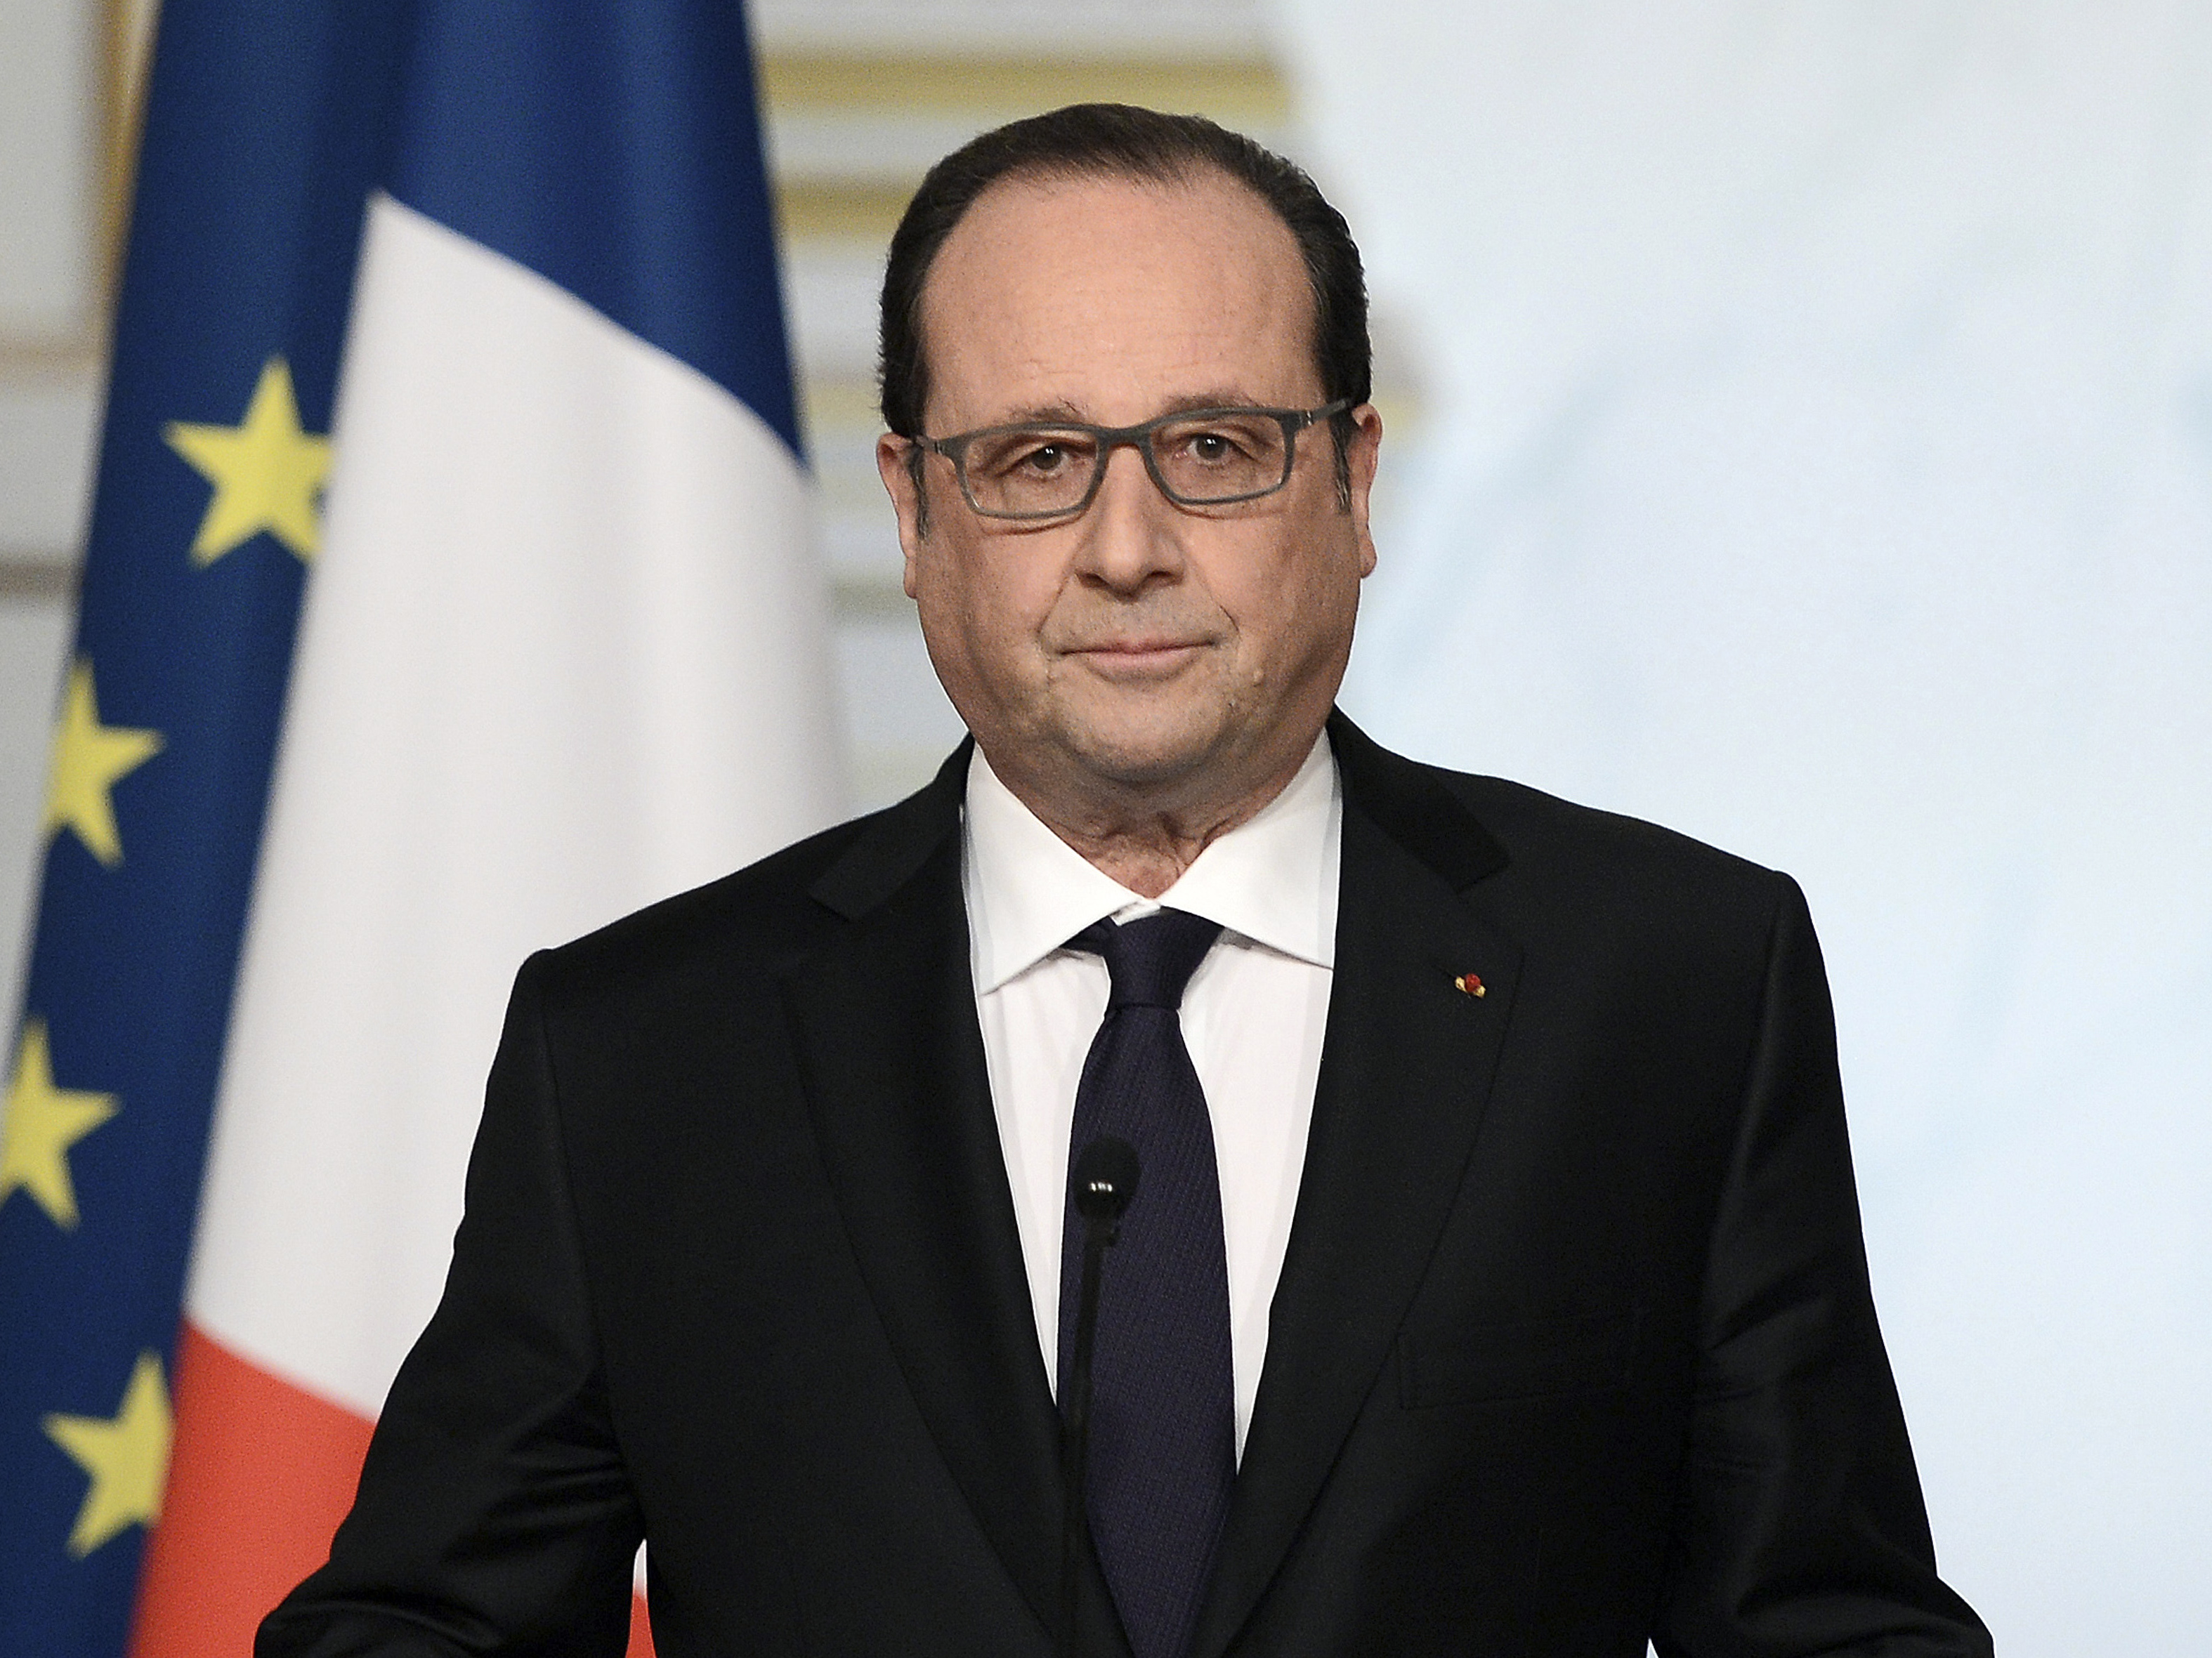 Hollande Abandons Plan To Strip Convicted Terrorists Of French Citizenship